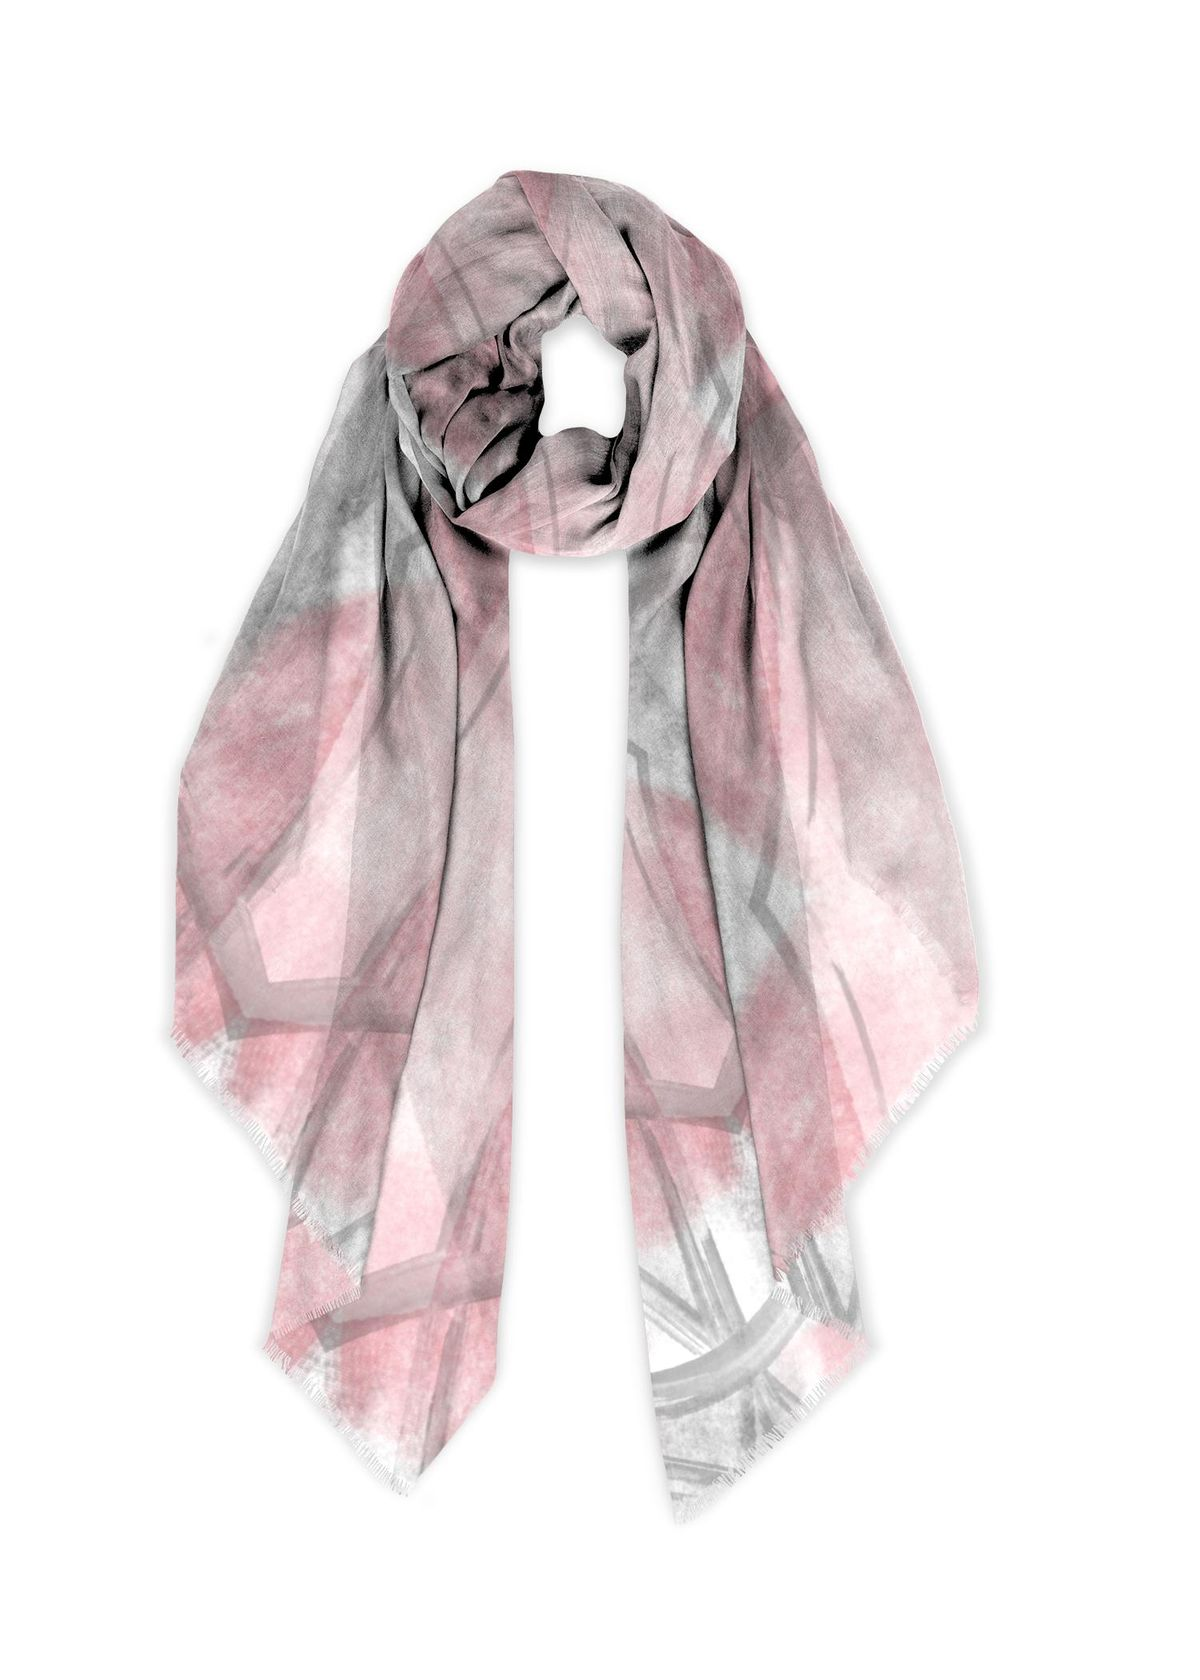 Modal Scarf (exclusive design) Abstract Painting No. 16 - LINK to VIDA